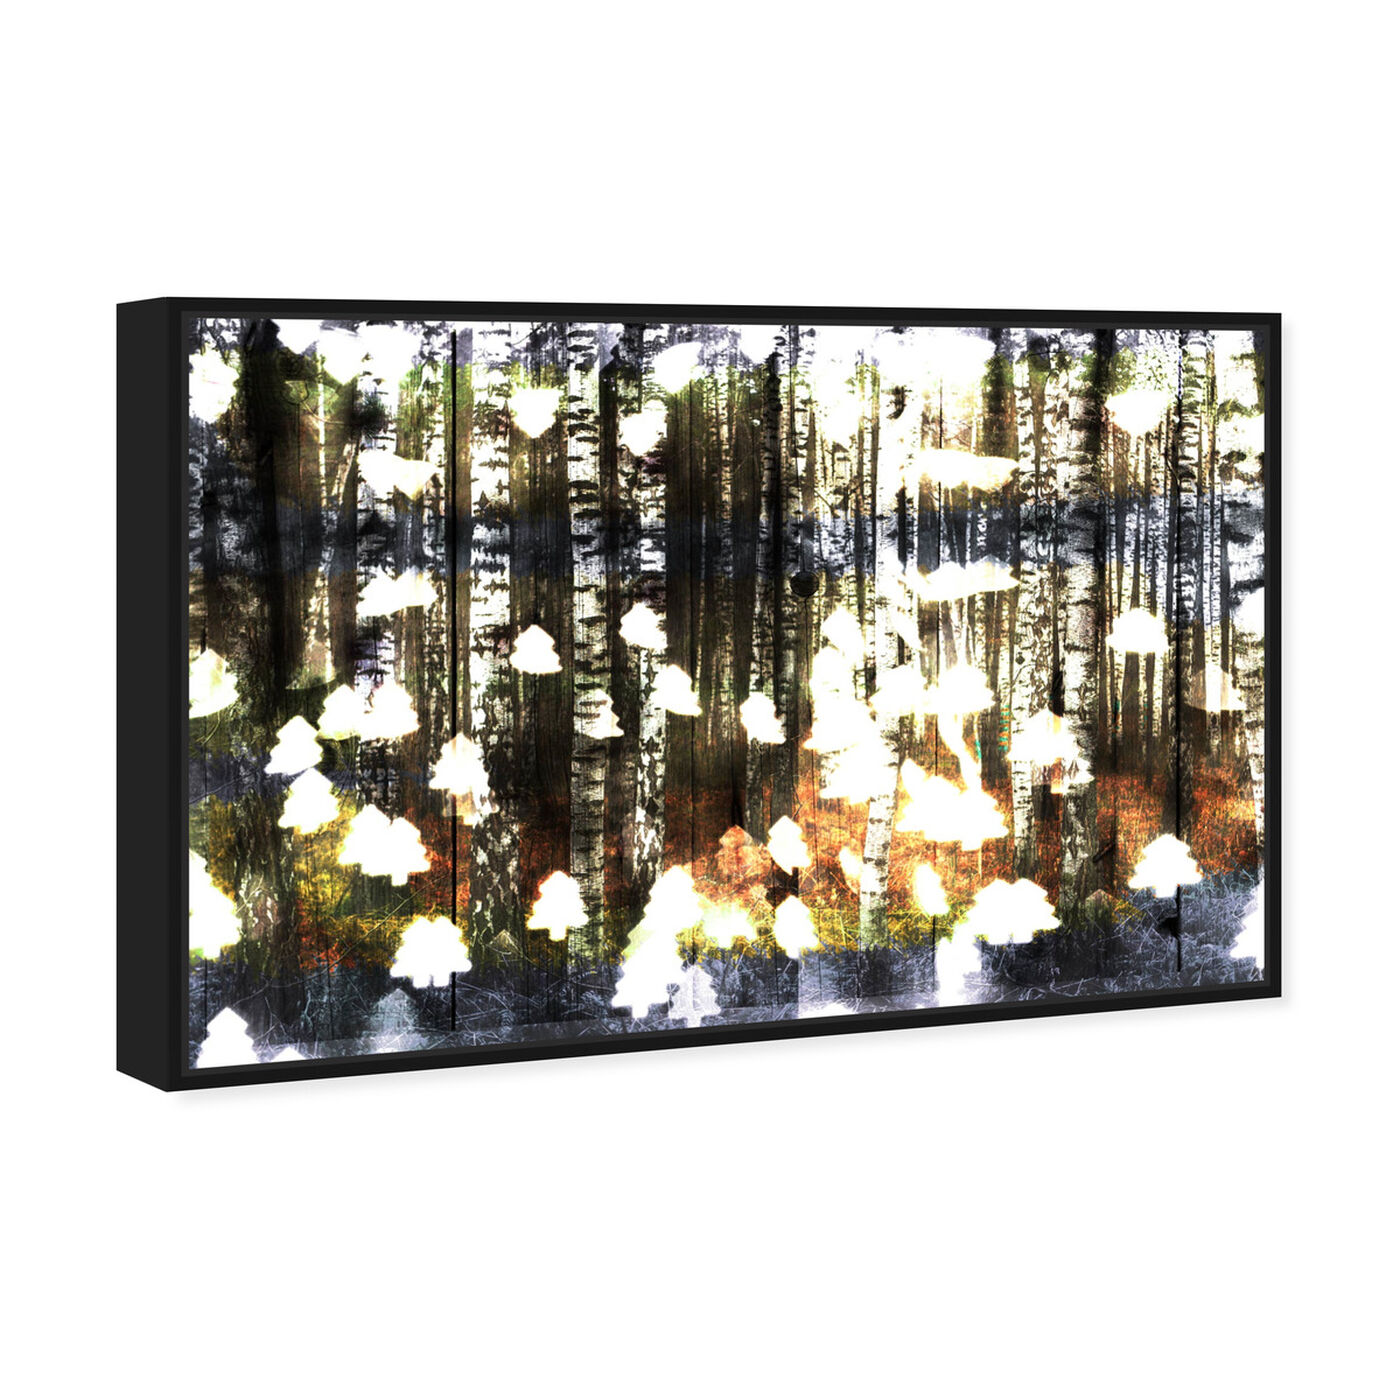 Angled view of Birch Land featuring nature and landscape and forest landscapes art.